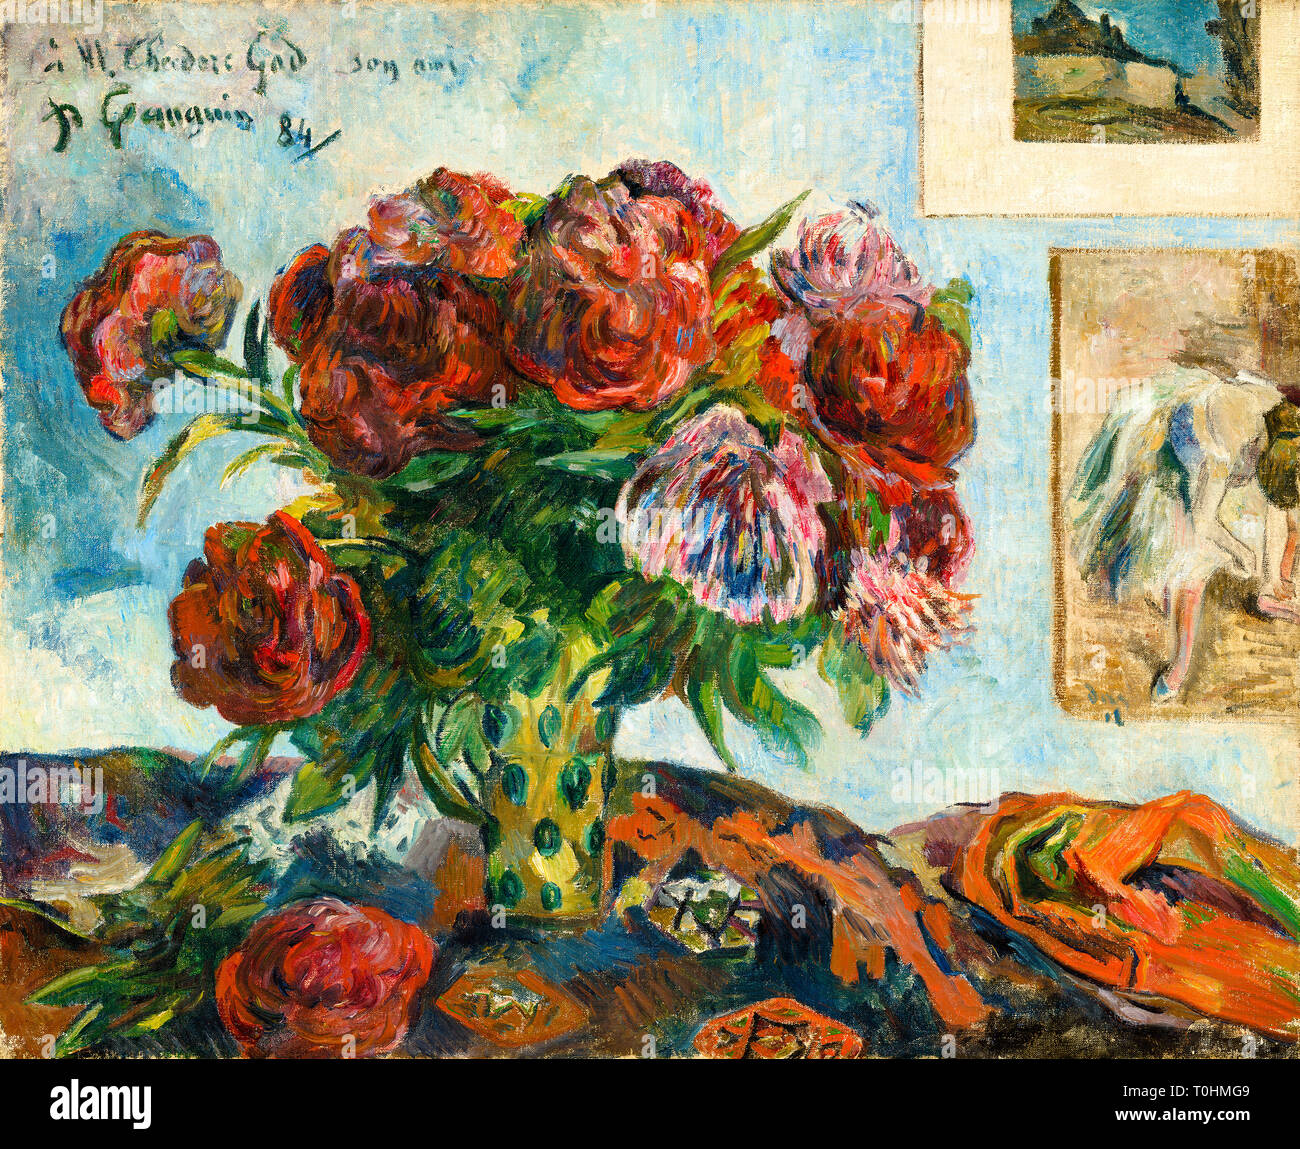 Paul Gauguin, Still Life with Peonies, painting, 1884 - Stock Image